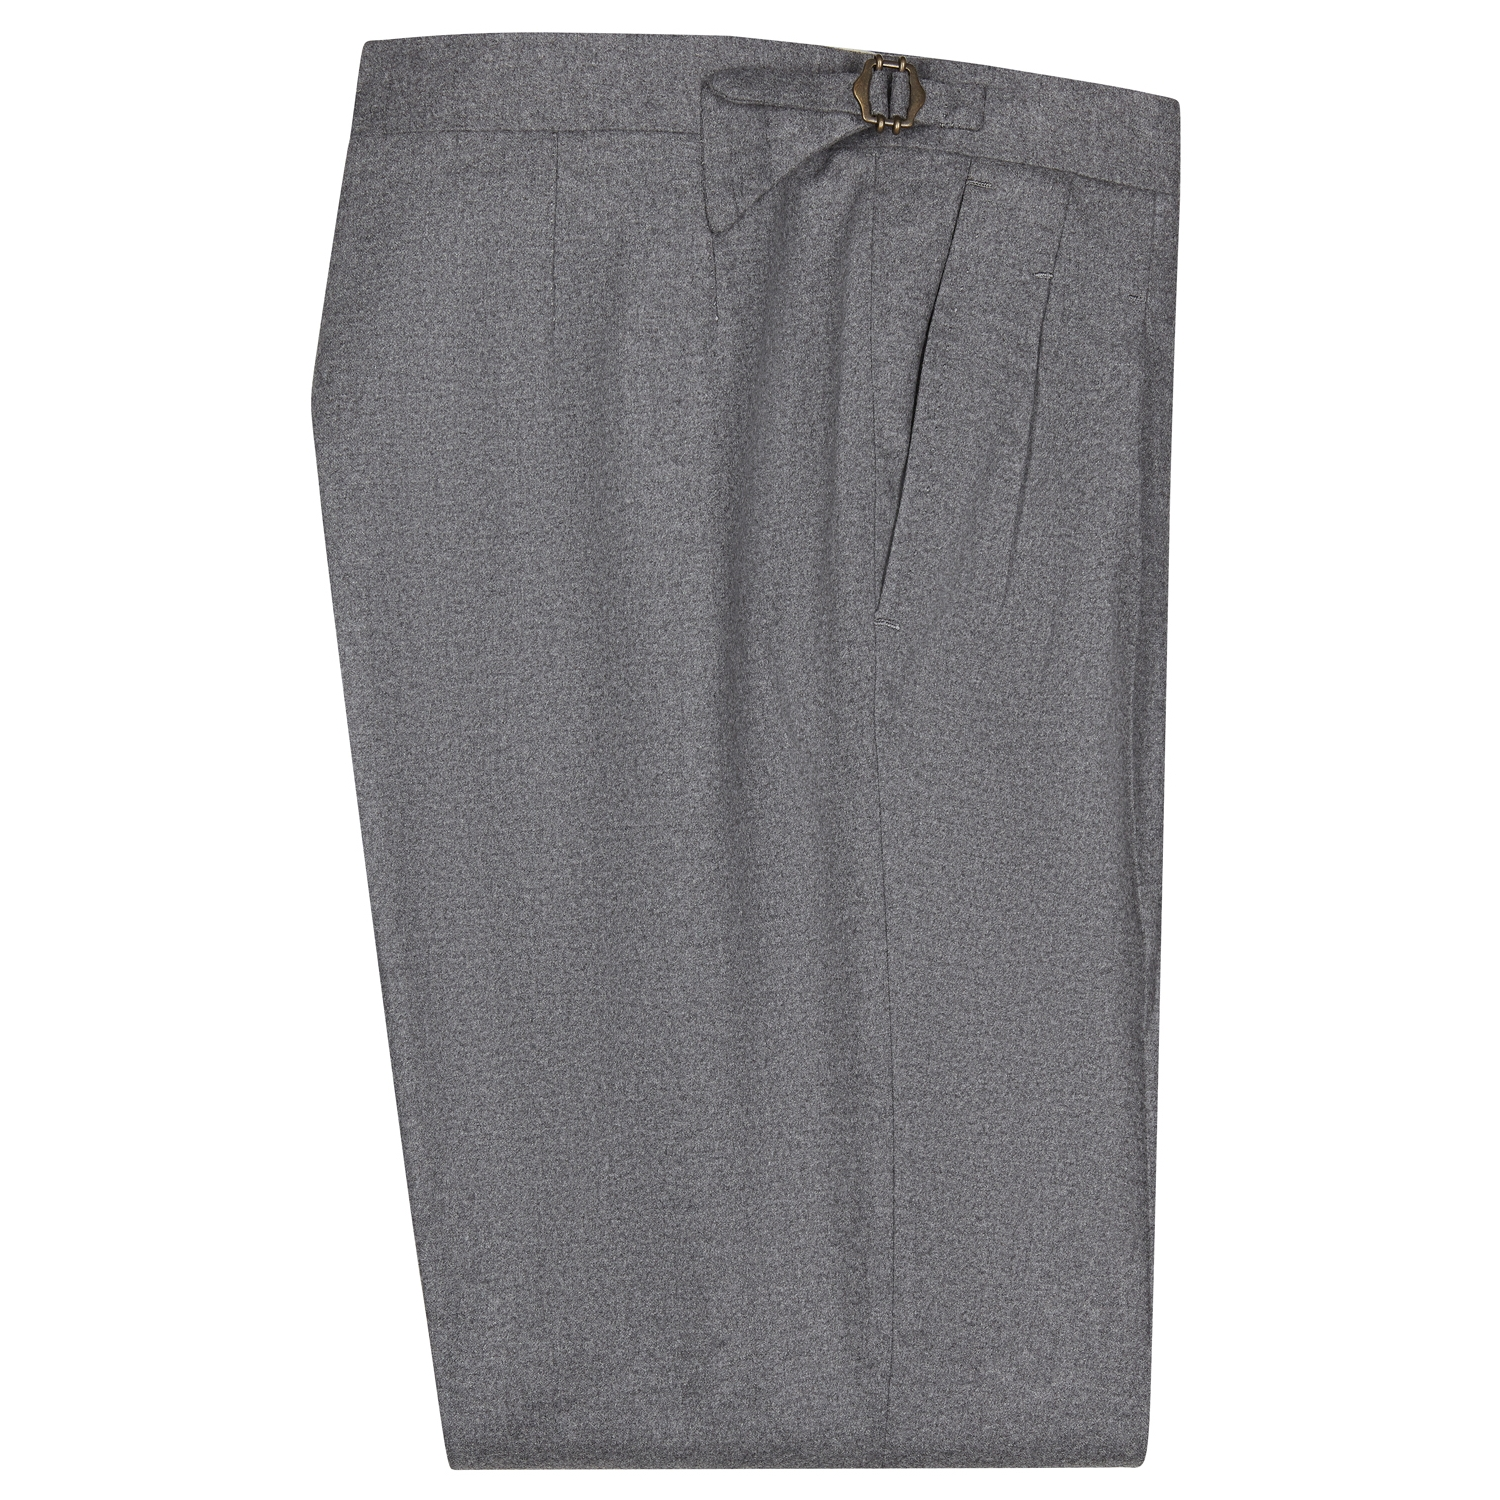 SSM-TR5 – Mid Grey double reverse pleats w/ side-adjusters - Cashmere/Wool mid-high waisted flannel trousers @Loro piana fabric